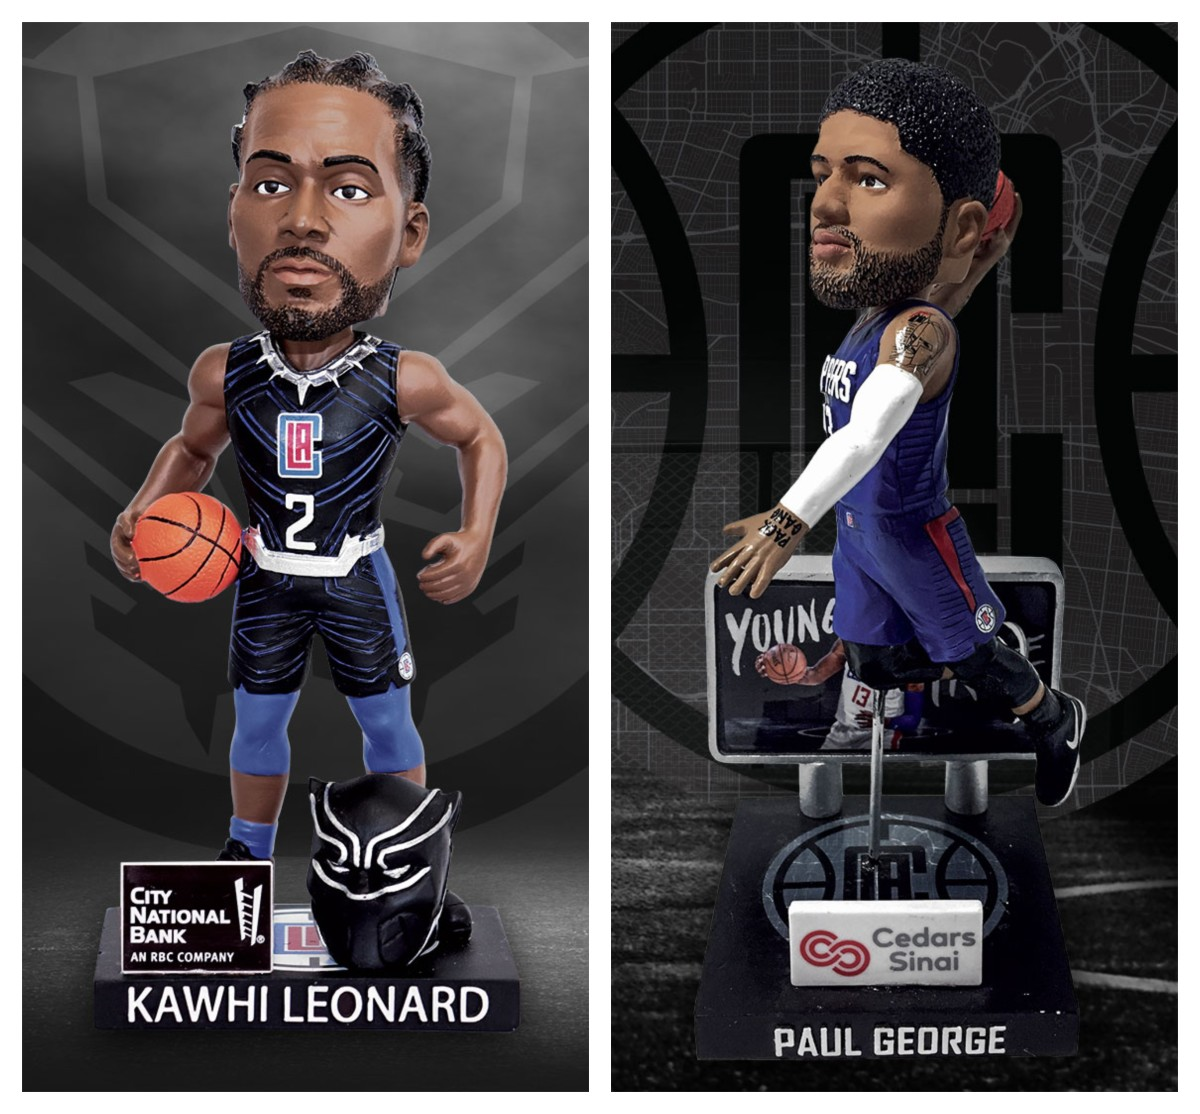 The Clippers will give out 10,000 Leonard bobbleheads against Miami Feb. 5 and 10,000 George bobbleheads against Philadelphia Mar. 1.